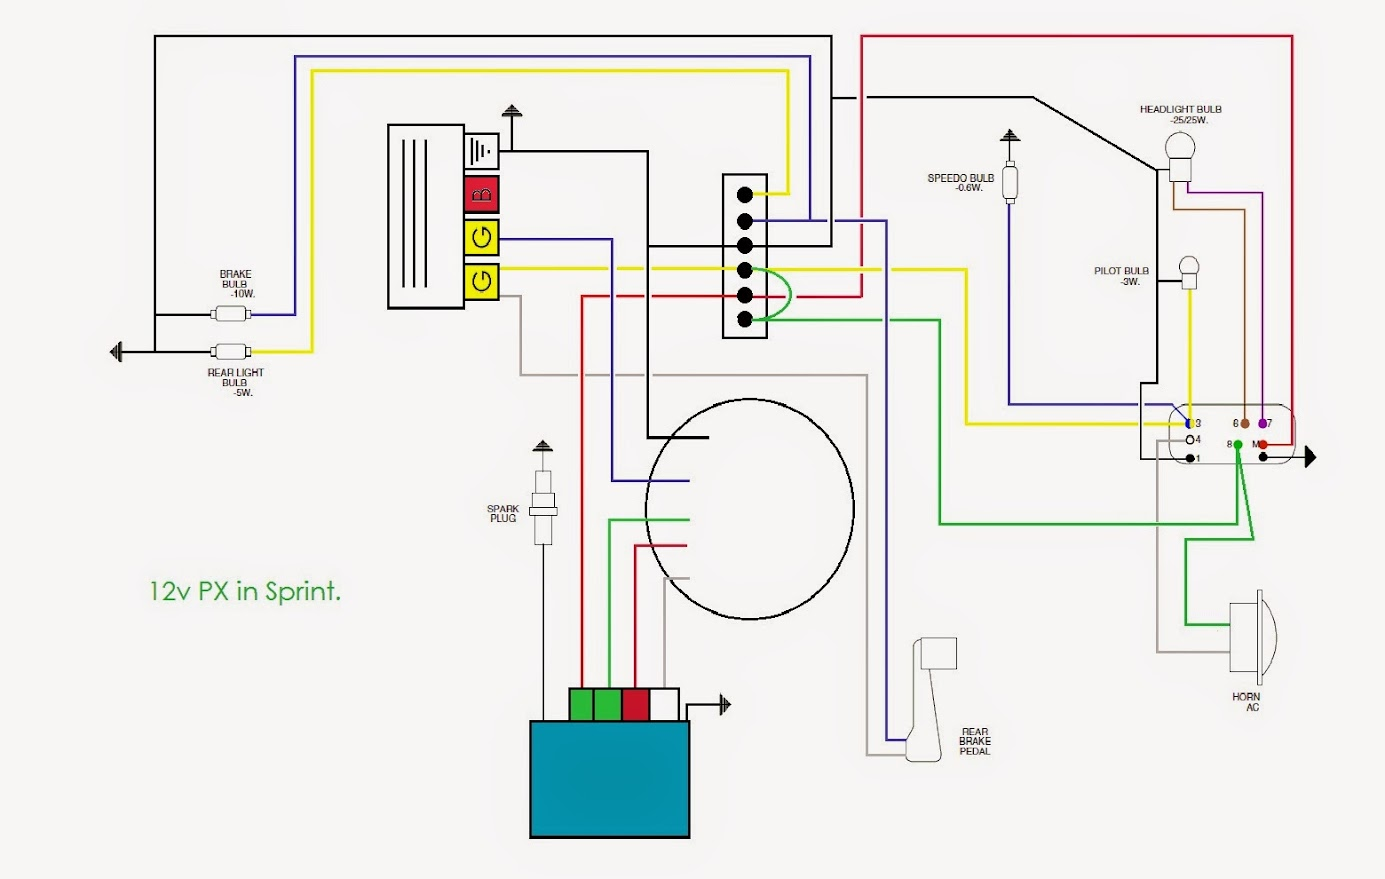 IMAGE_14 modern vespa vespa sprint 12v px lml motor lambretta 12v wiring diagram at bakdesigns.co